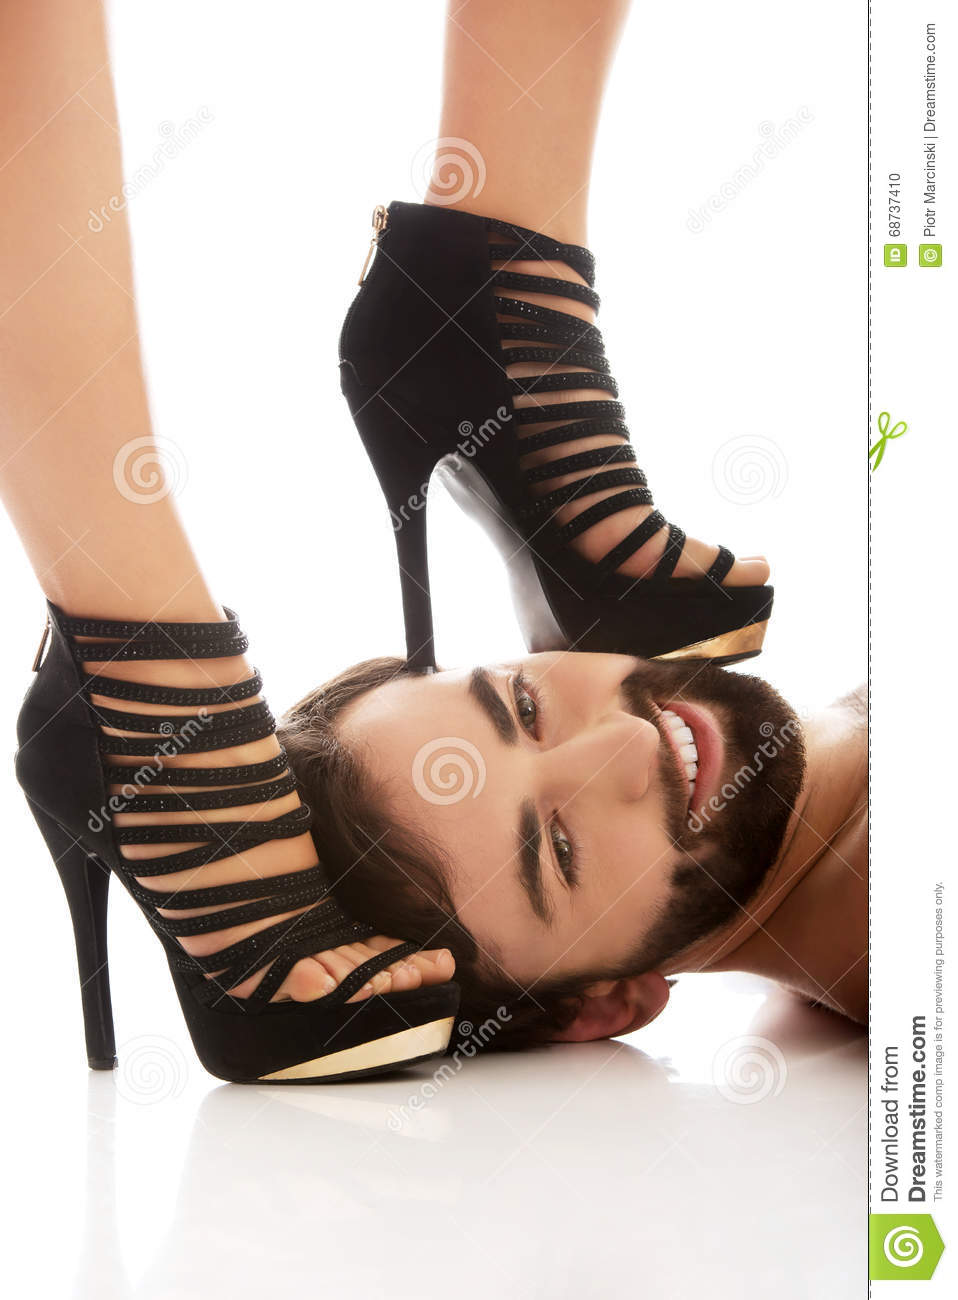 Strong powerful women sexy feet dominate